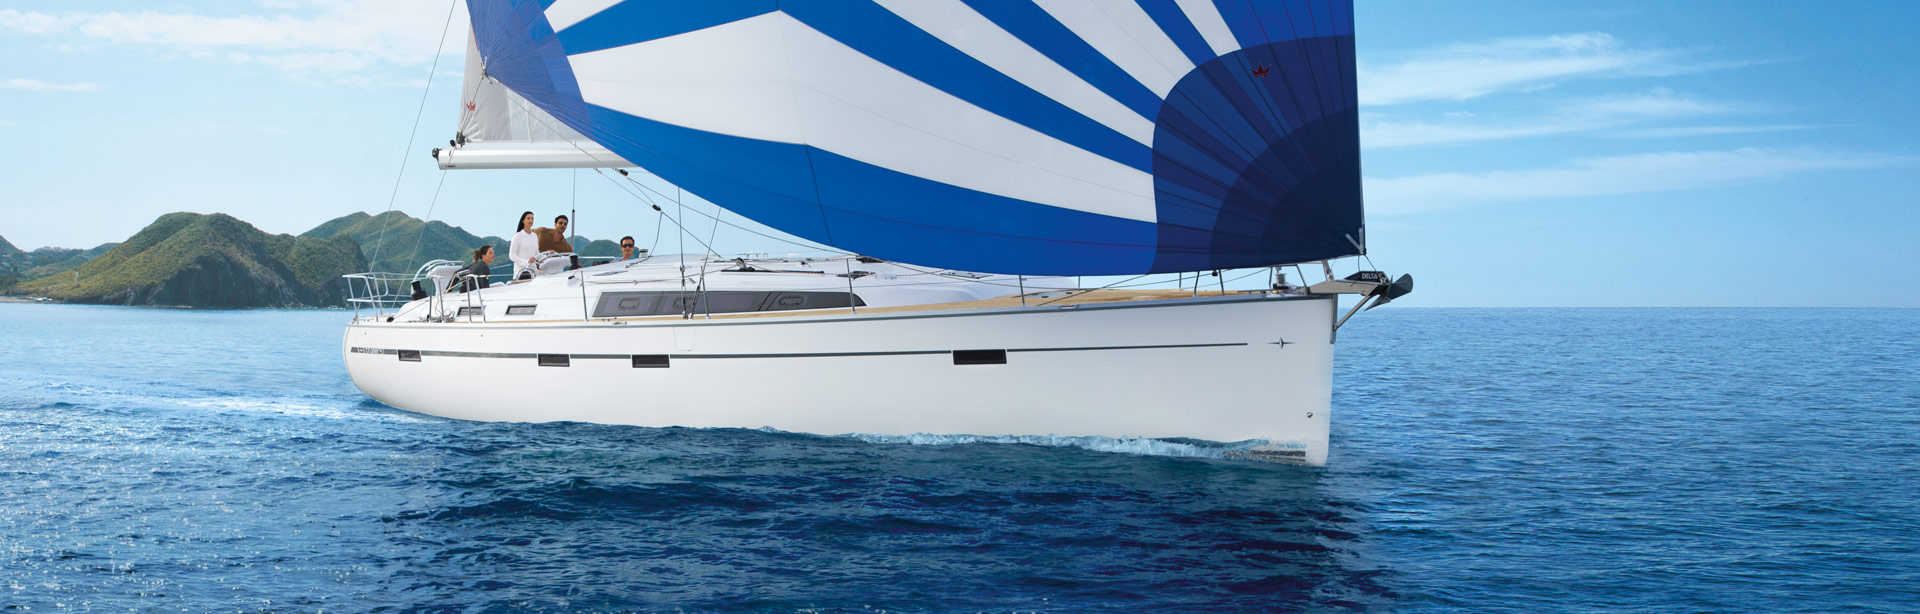 german-yacht-broker-header-4